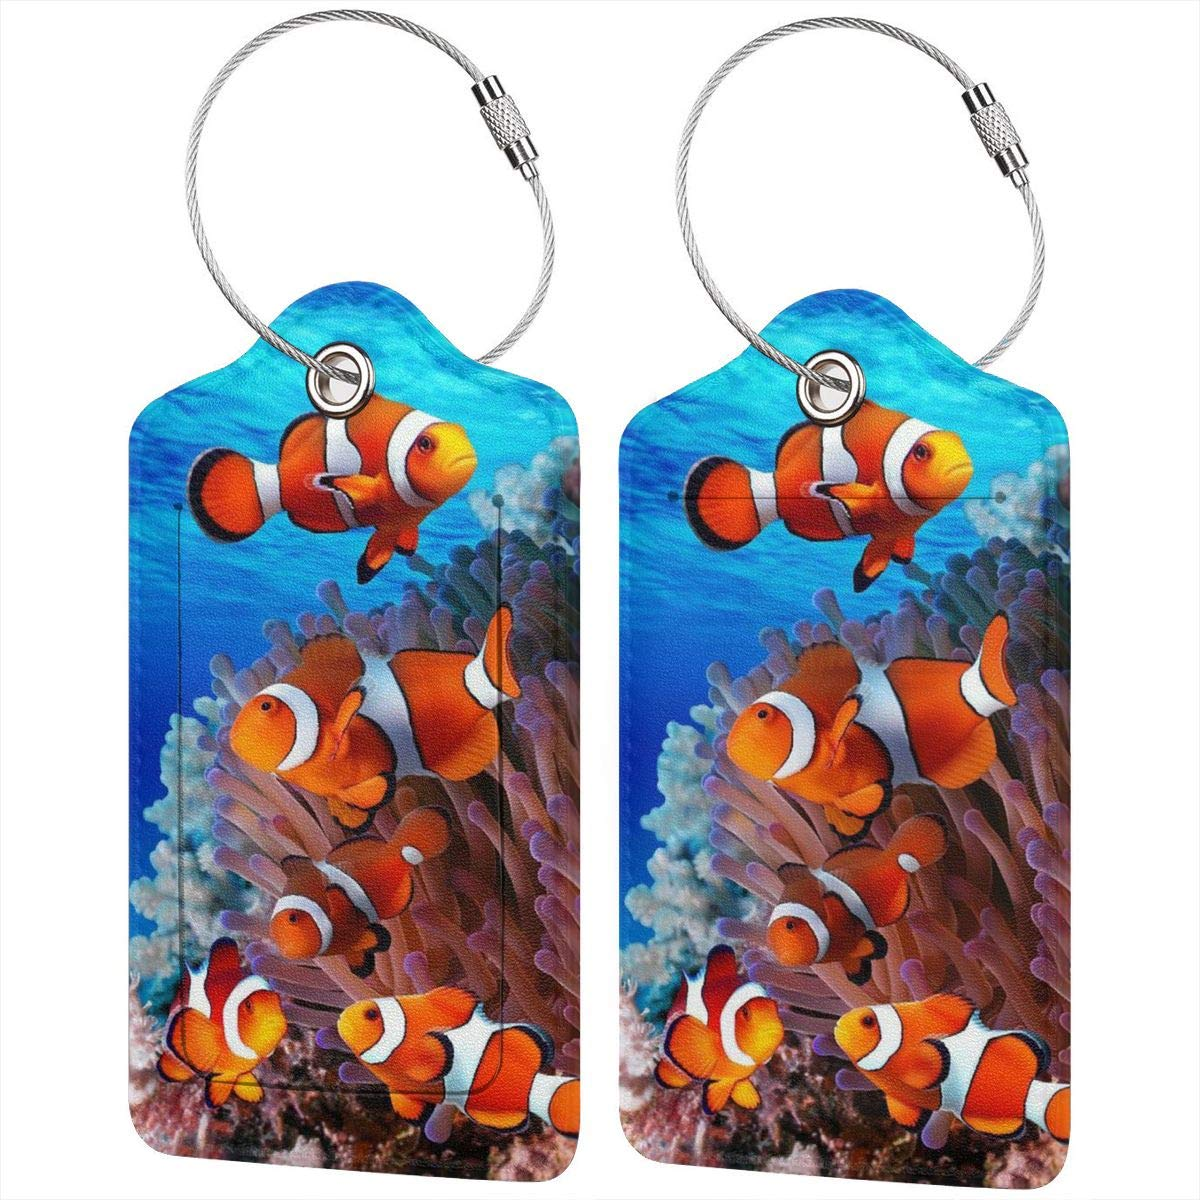 Underwater World Plants And Shark Luggage Tags With Full Back Privacy Cover W//Steel Loops